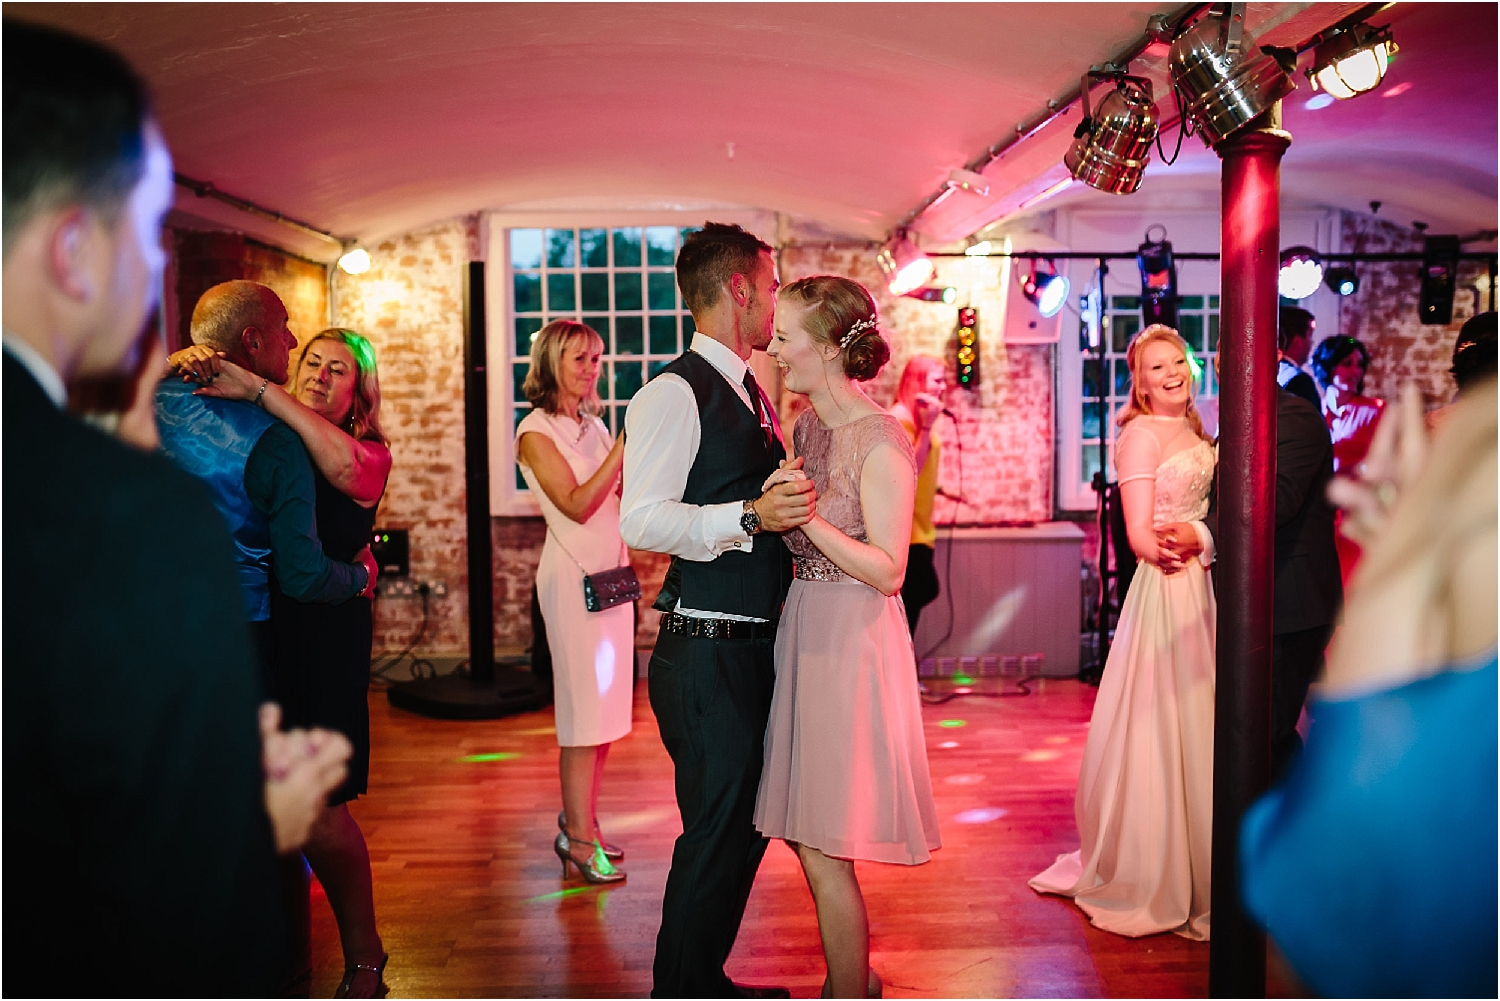 Wedding-west-mill-venue-professional-photographer-natural-documentary-nottingham-derby-423_BLOG.jpg